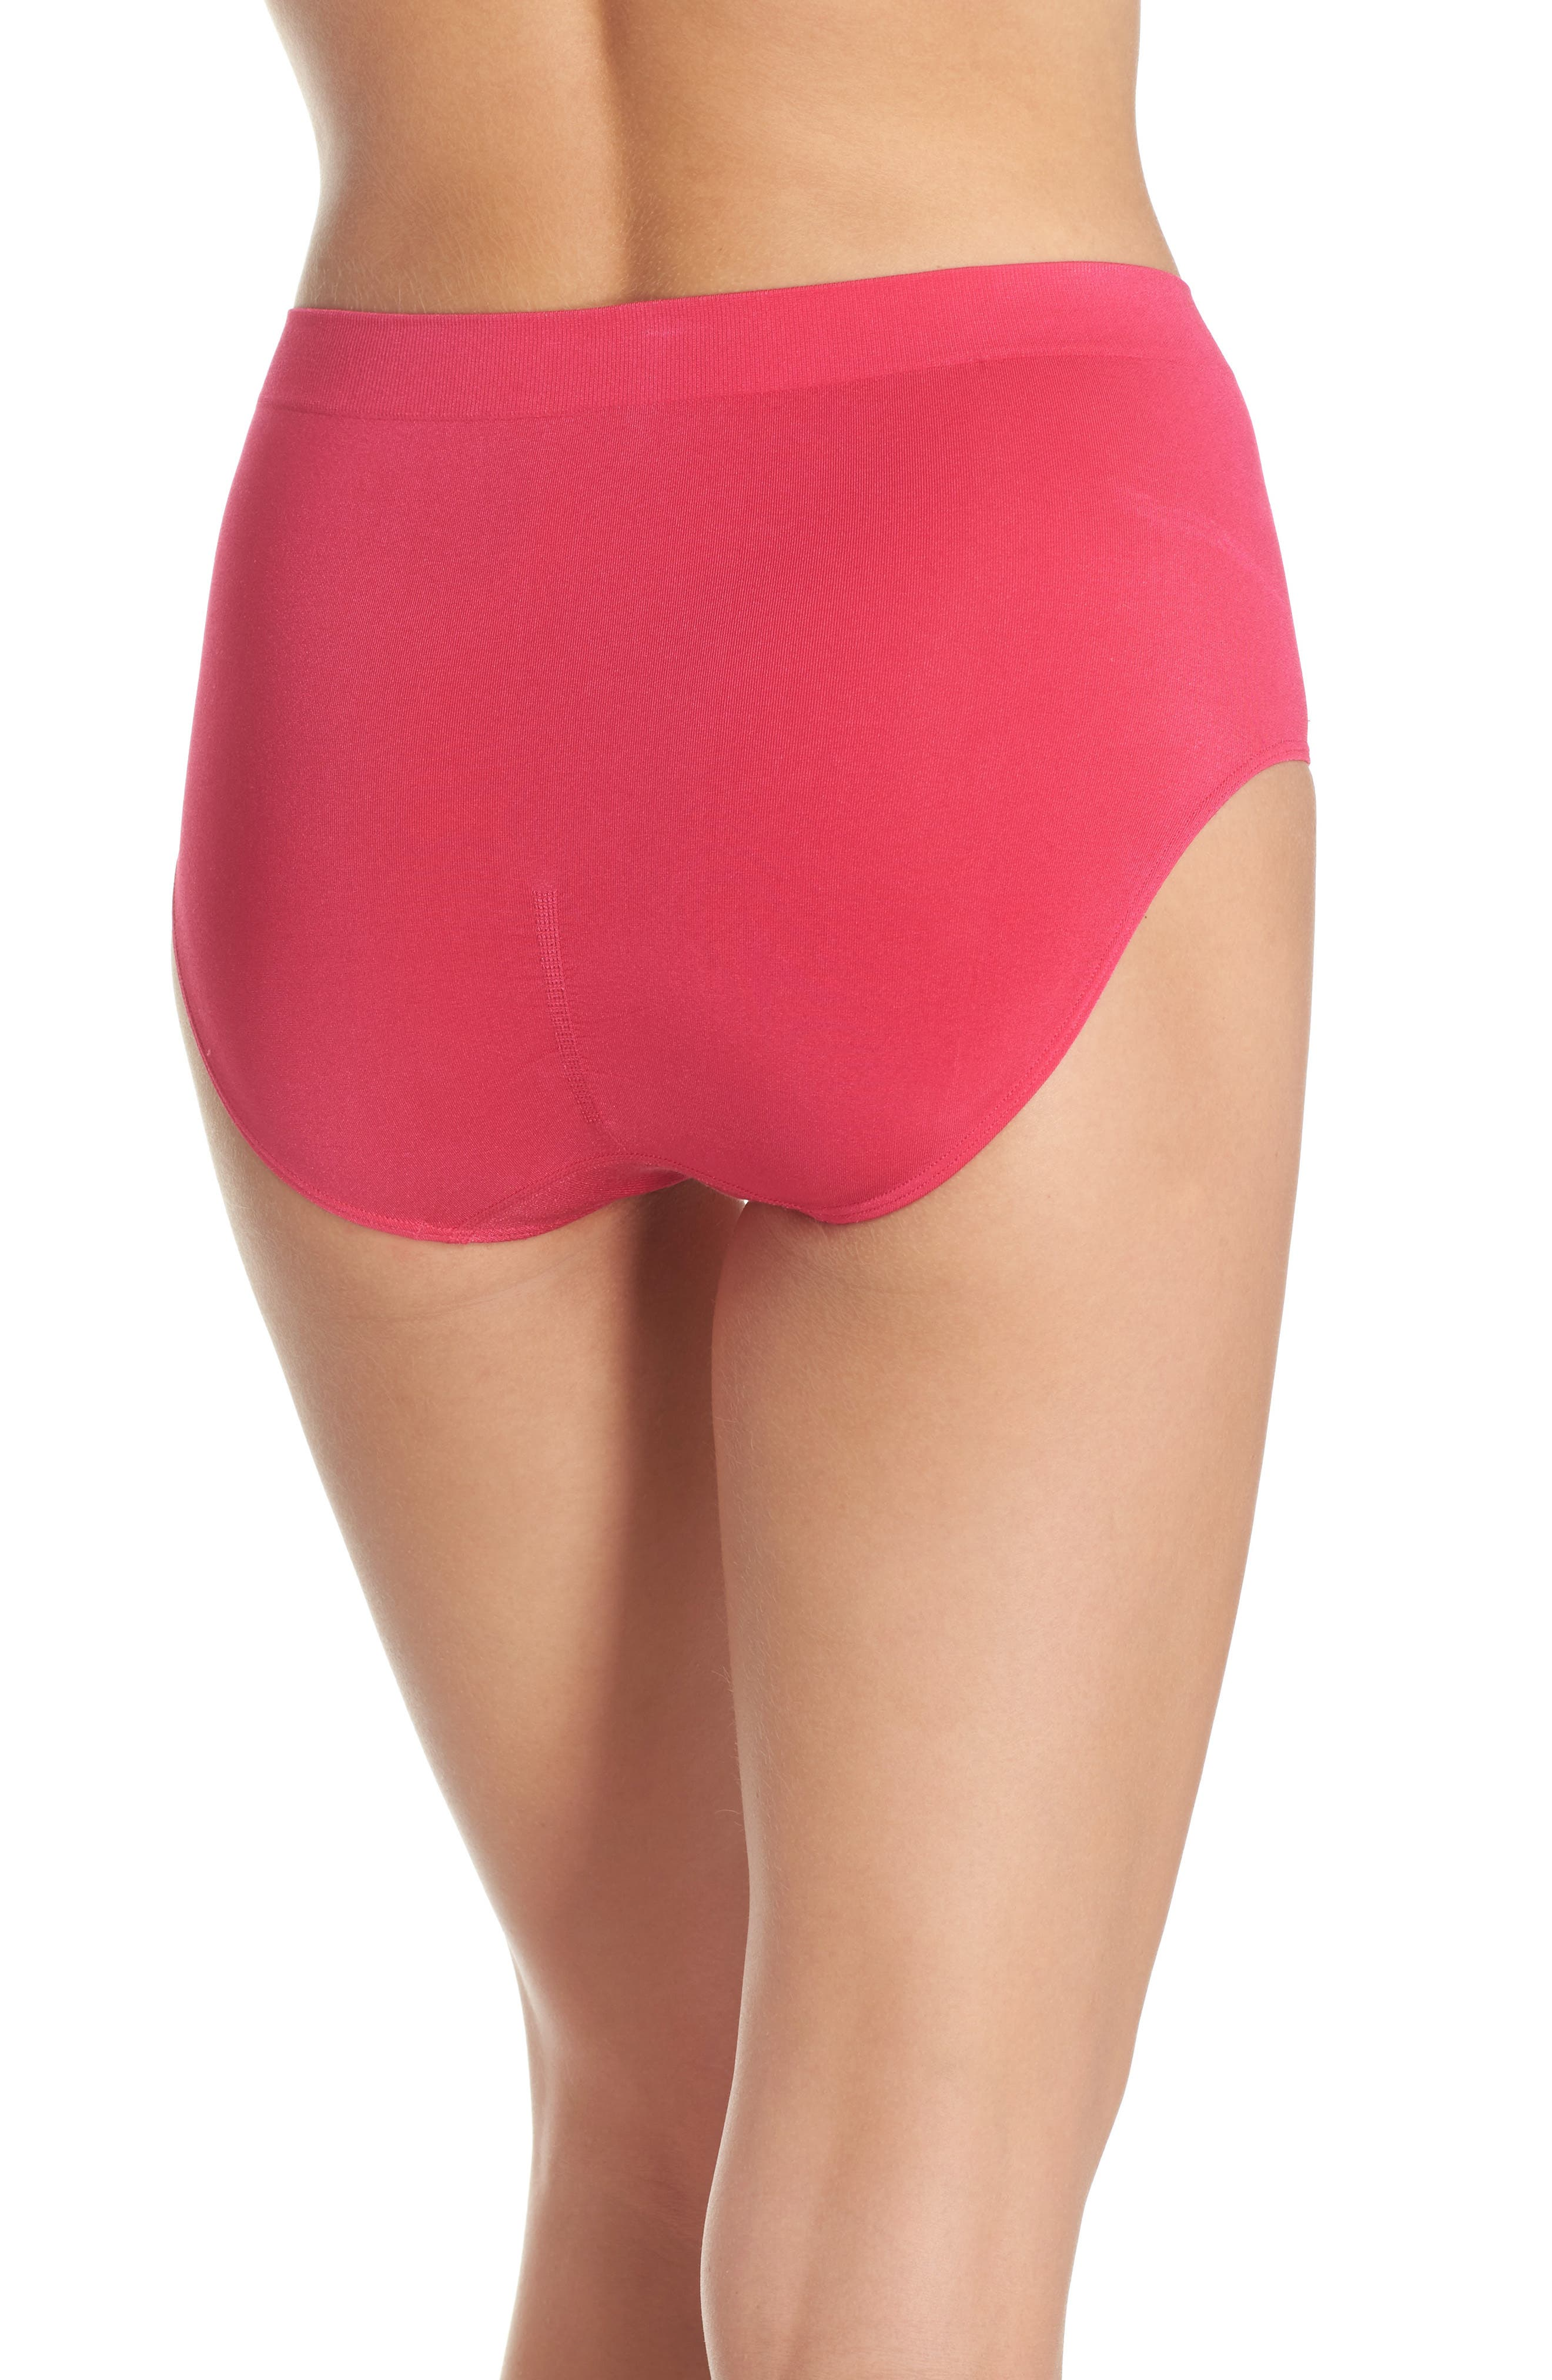 B Smooth Briefs,                             Alternate thumbnail 2, color,                             Pink Peacock